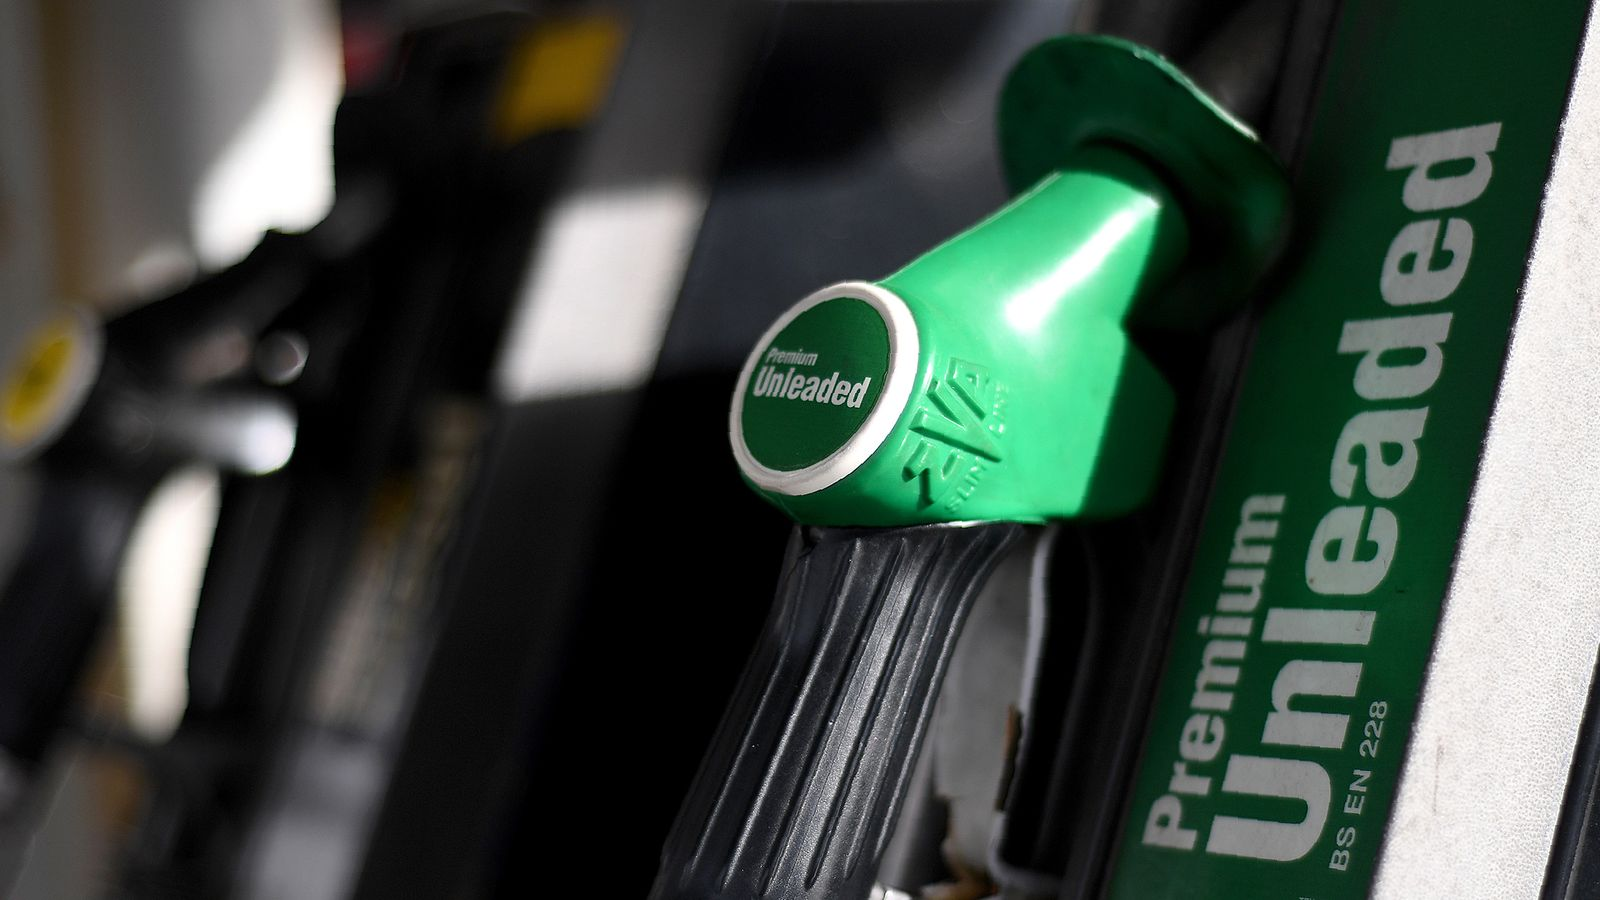 Inflation sinks to four-year low as fuel costs fall